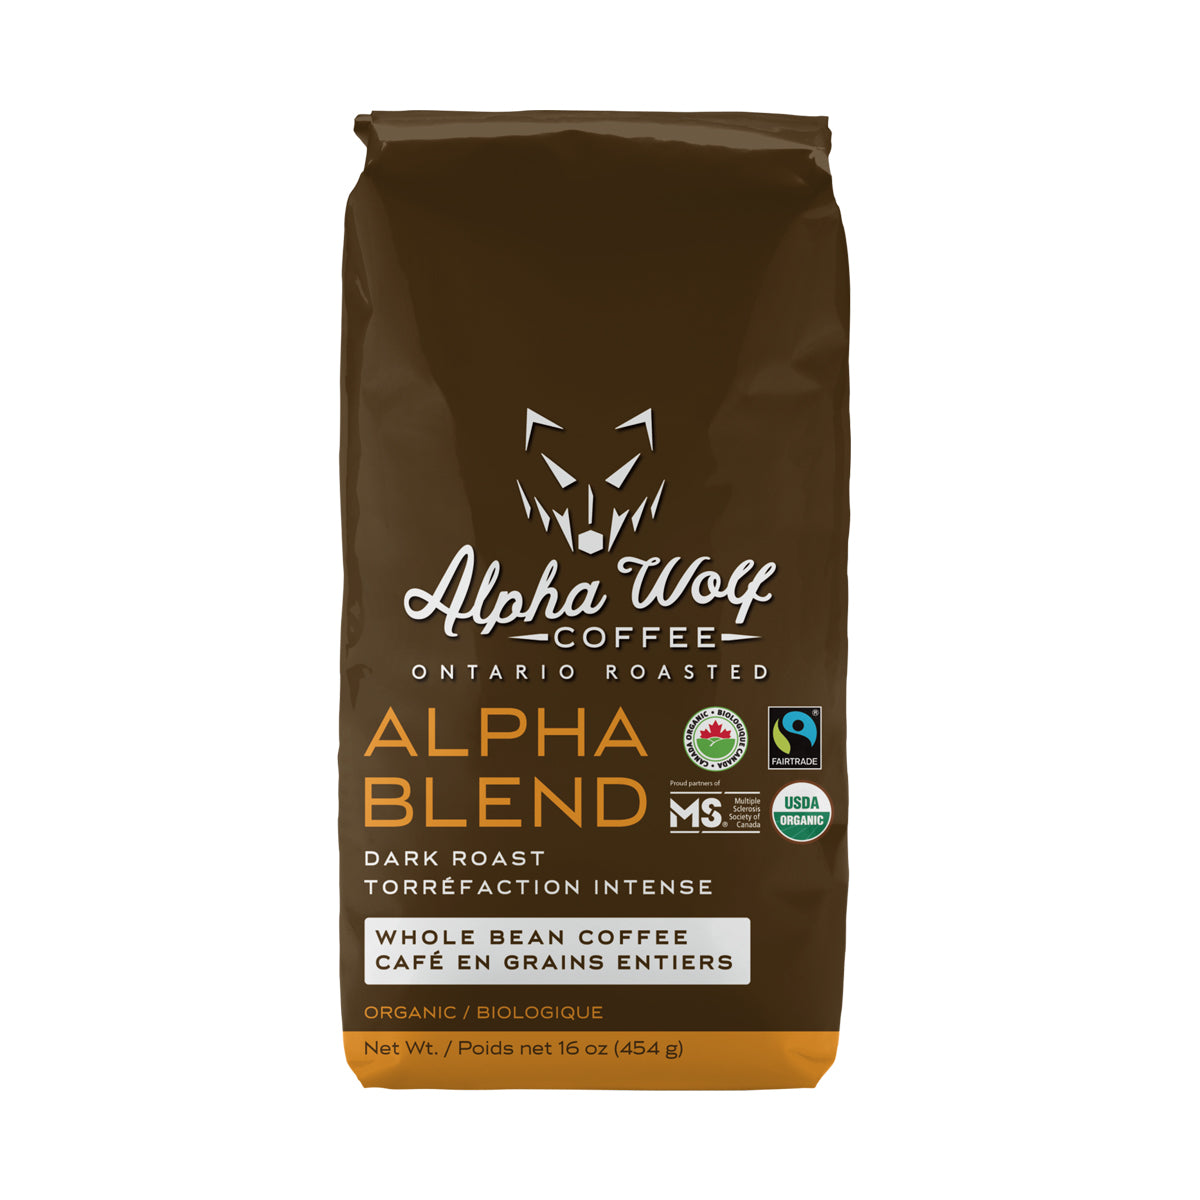 Alpha Blend Dark Roast Whole Bean Coffee Fairtrade Certified Organic 454 g (16 oz)